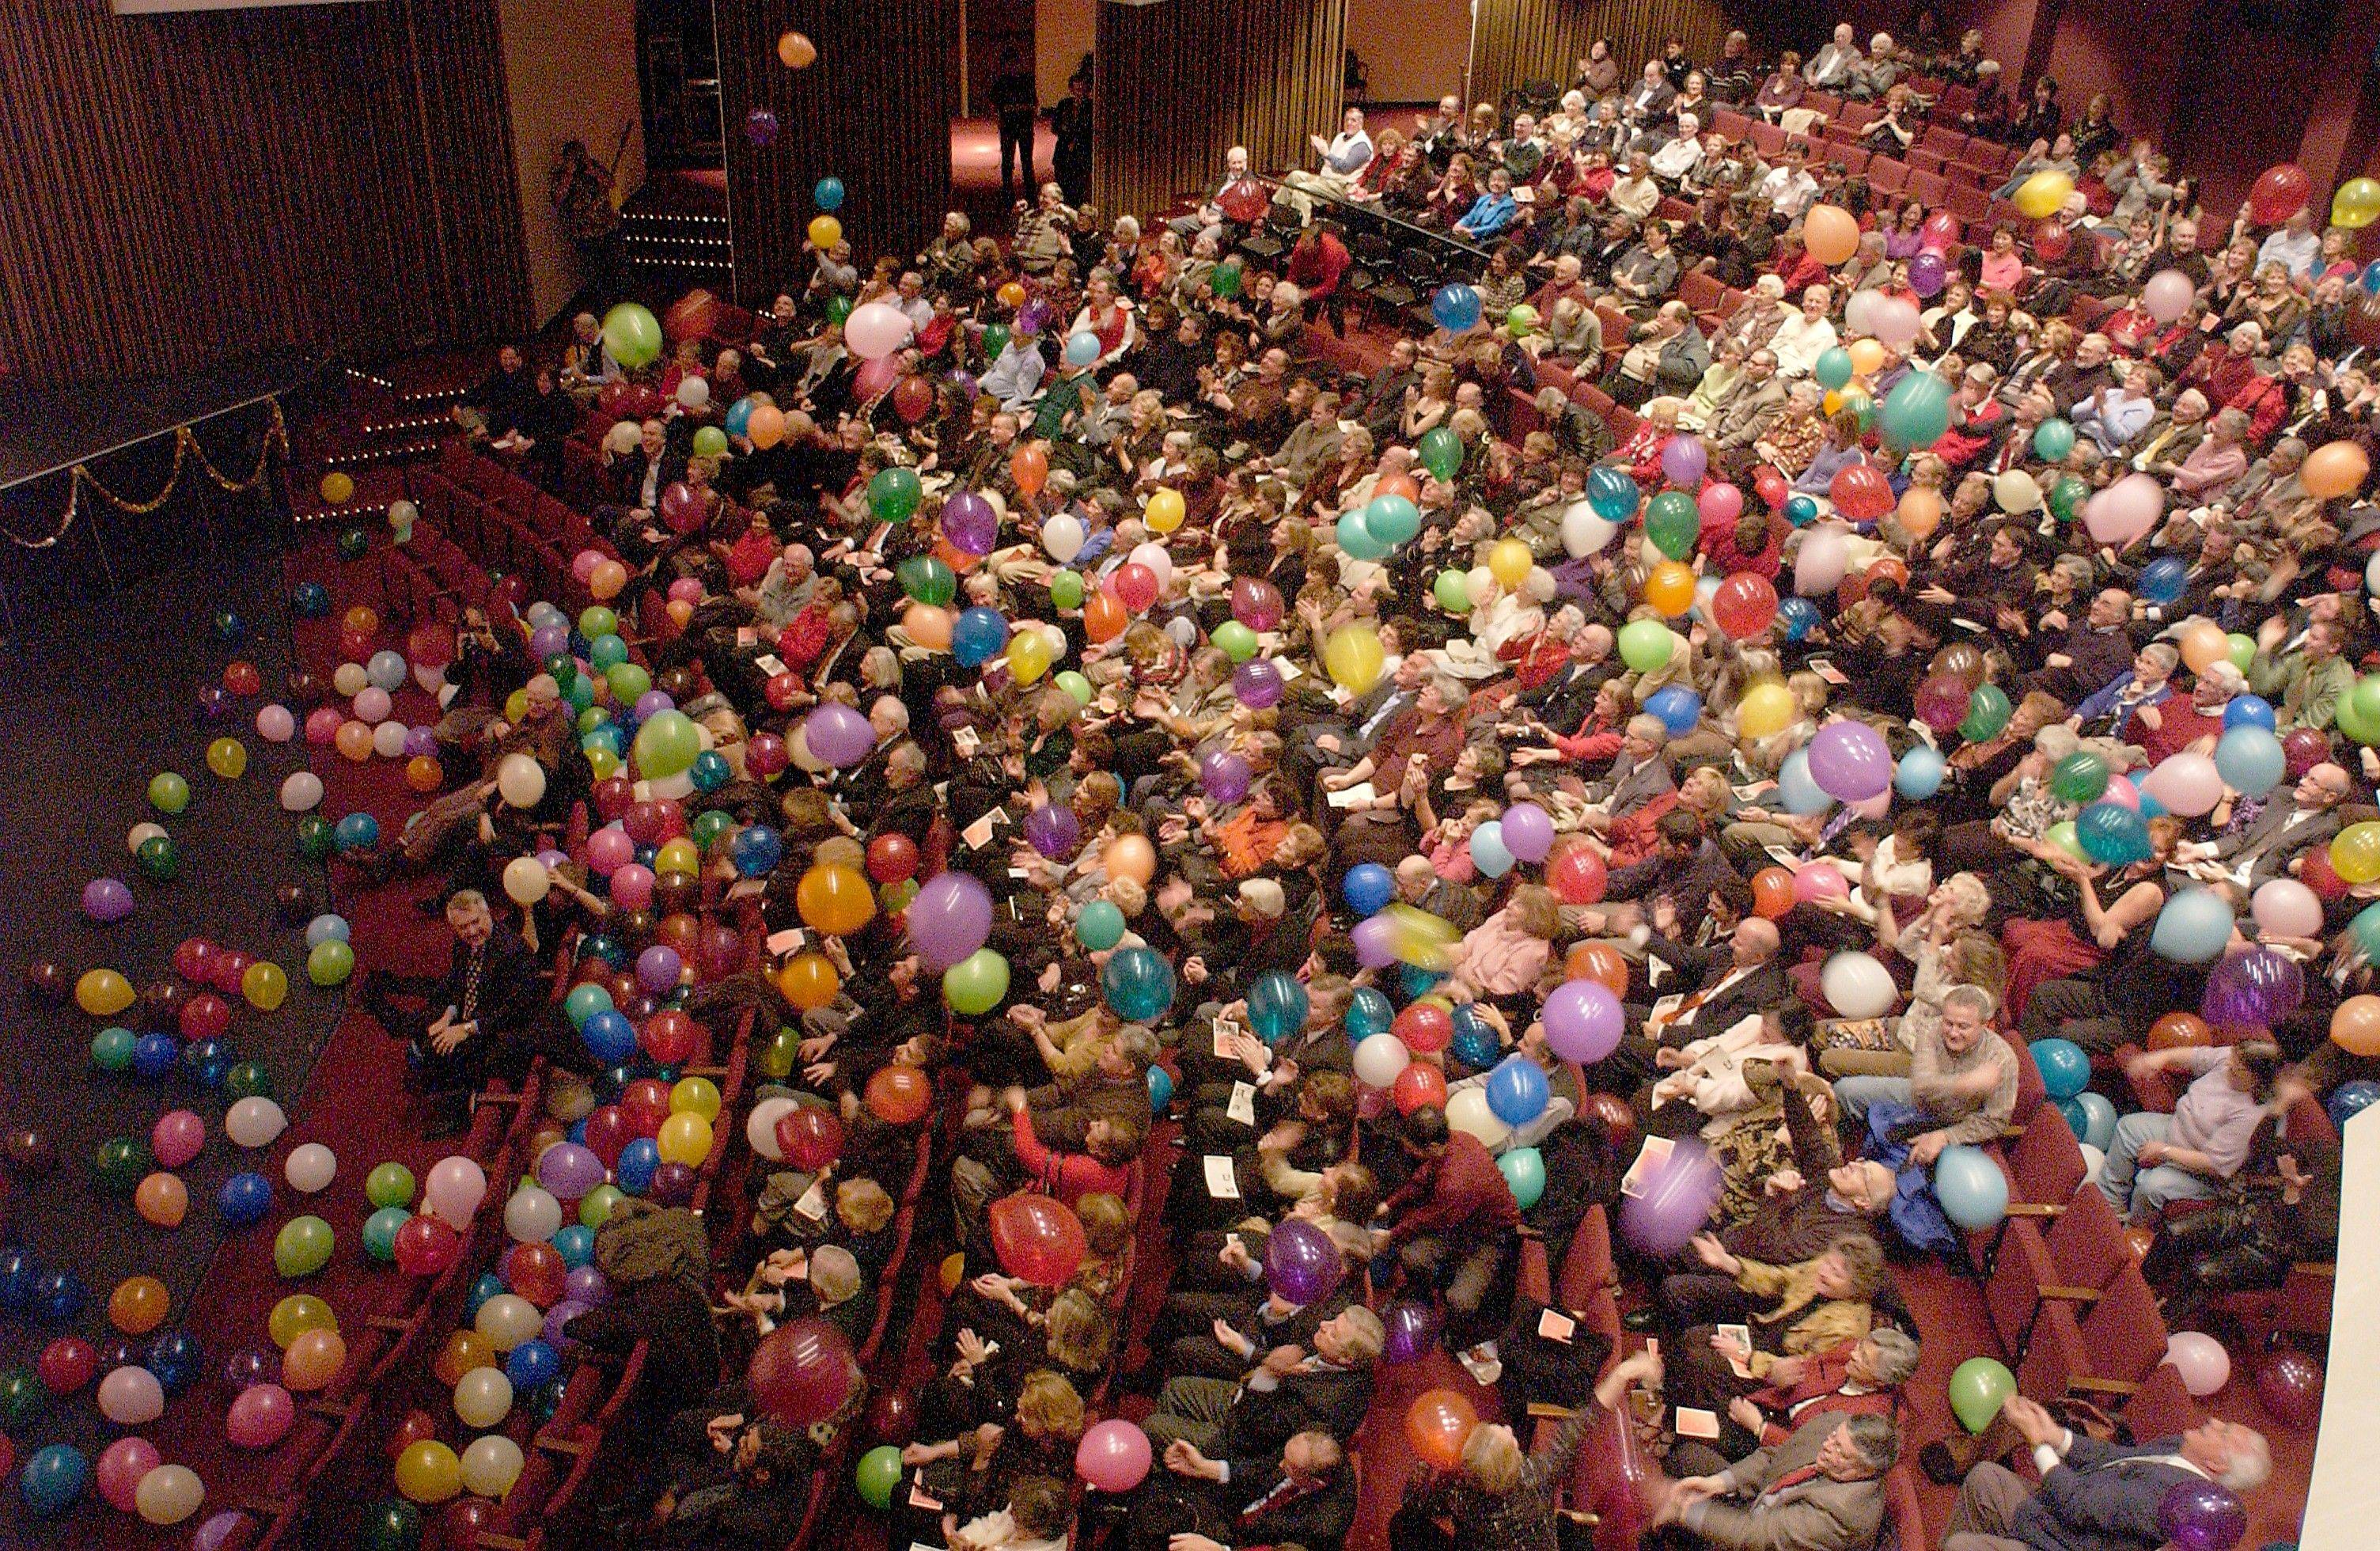 Balloons fall on a previous audience at the New Philharmonic's New Year's Eve concerts at College of DuPage's McAninch Arts Center in Glen Ellyn.